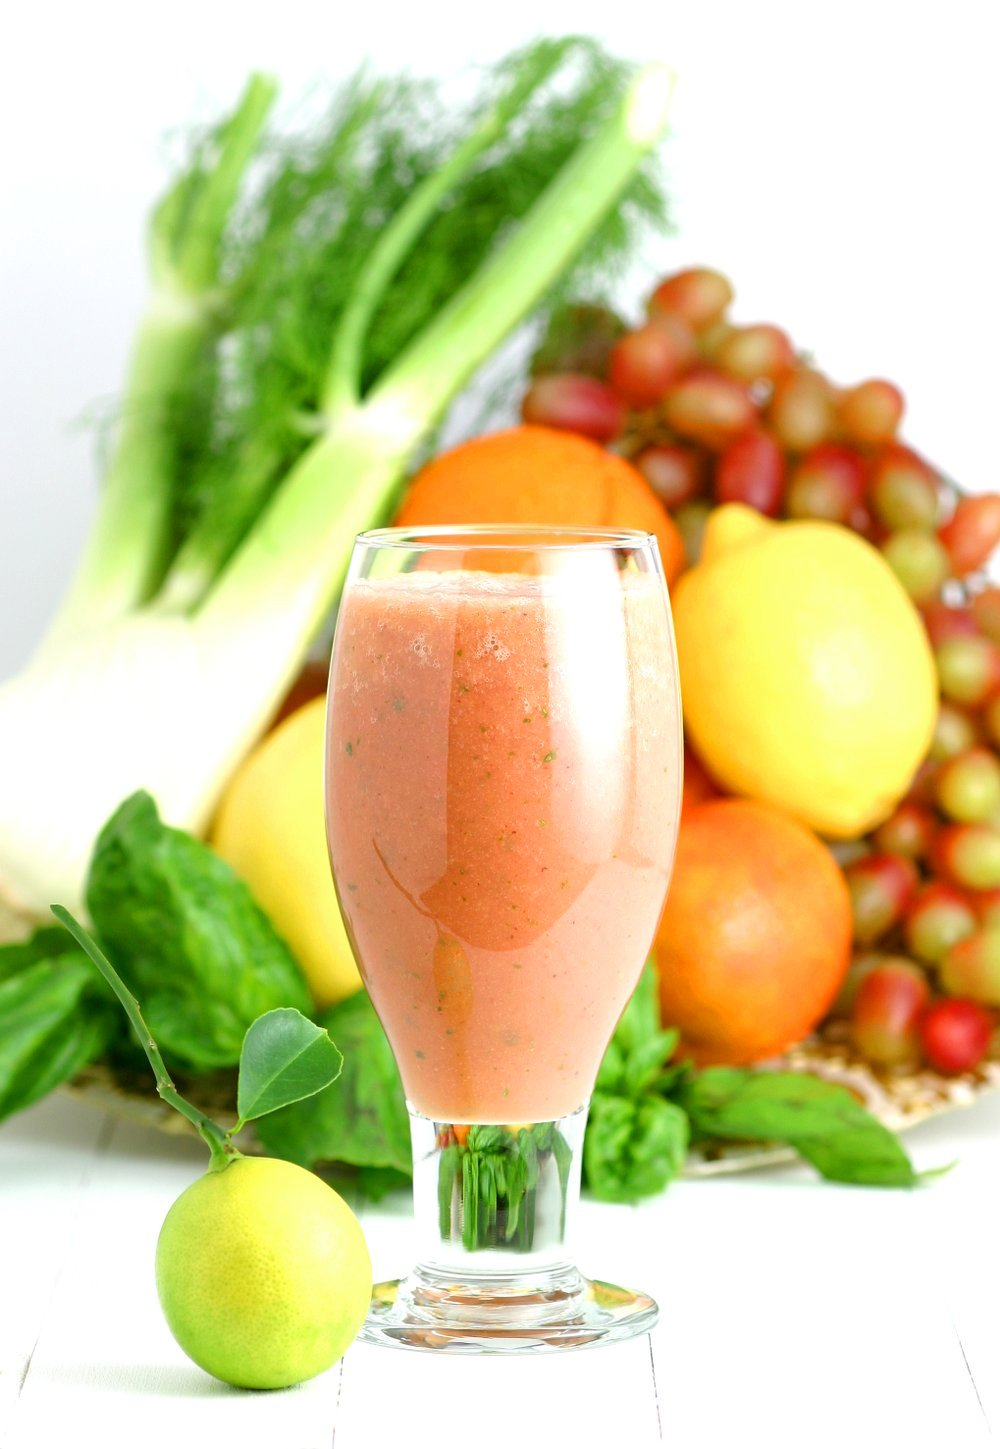 This Sicilia Smoothie features the bright flavors of its island namesake: juicy oranges, sour grapefruit, refreshing fennel, sweet grapes, and fragrant basil.